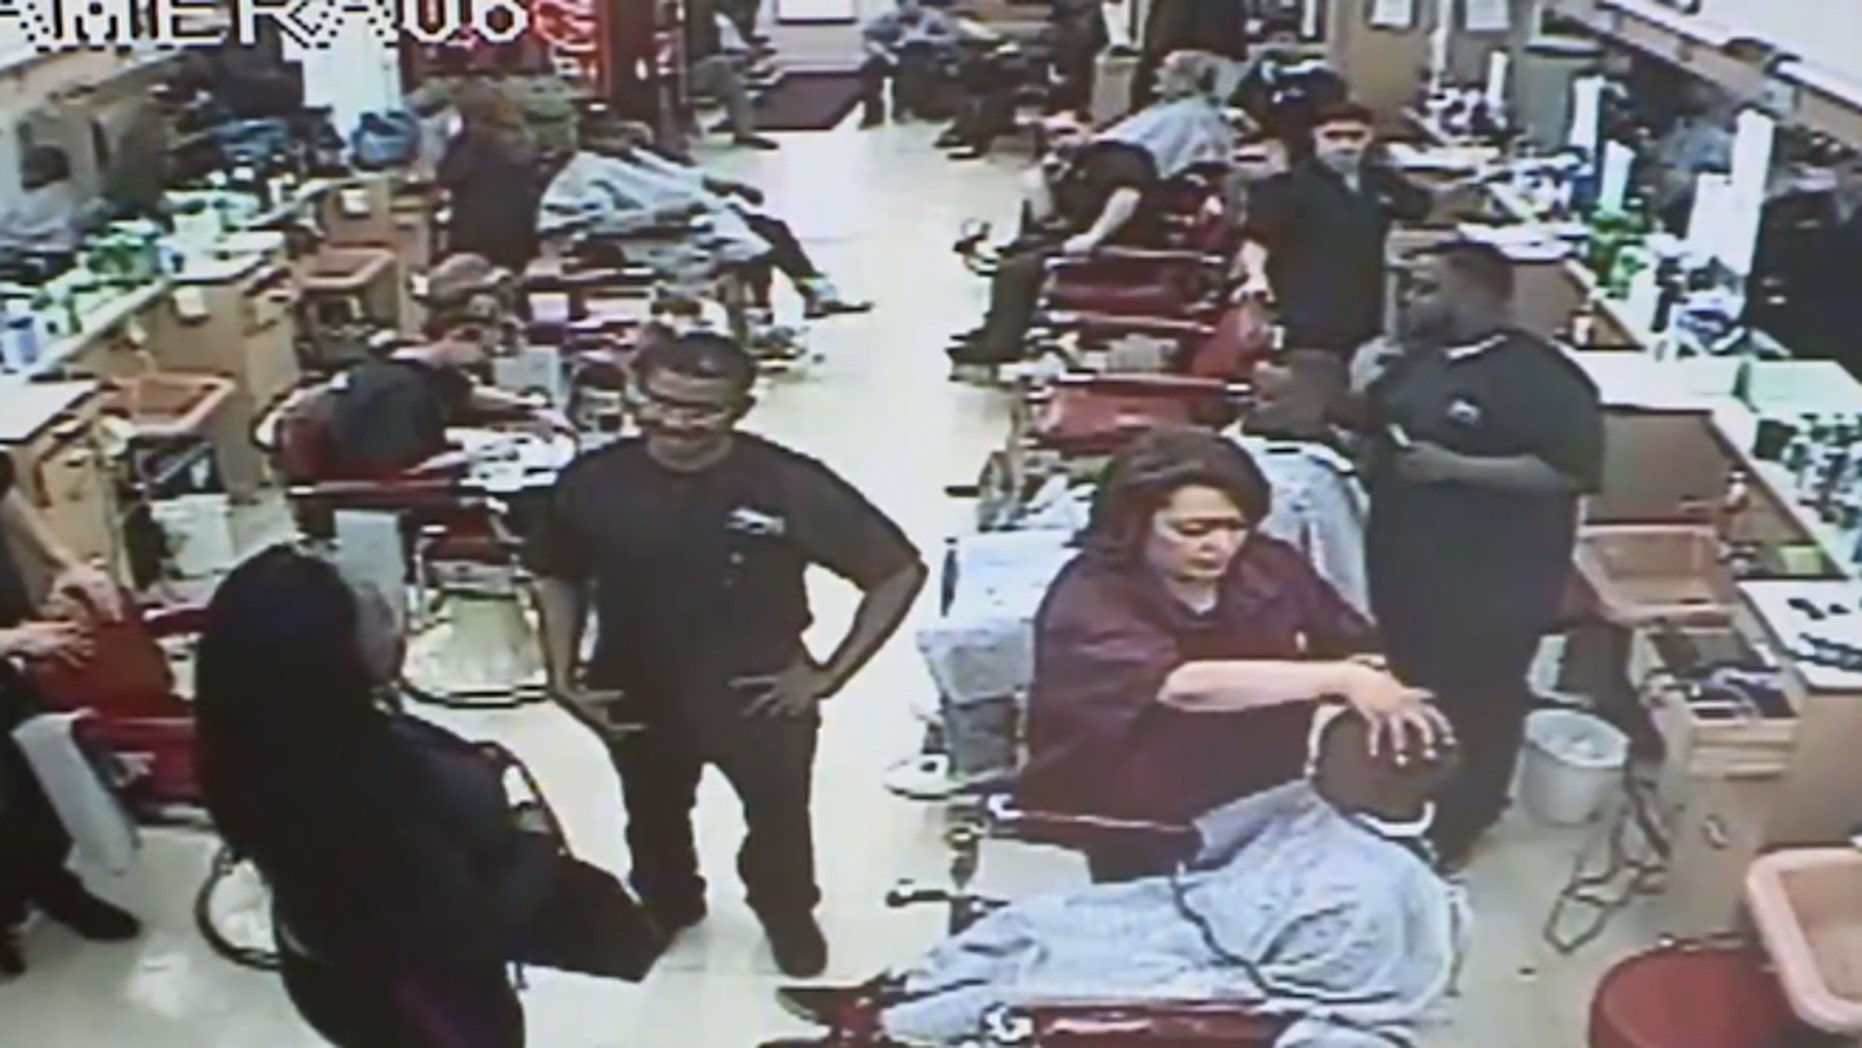 Cleveland police are seeking to identify a woman who pulled a gun on a barber because her son's $6 haircut was taking too long.